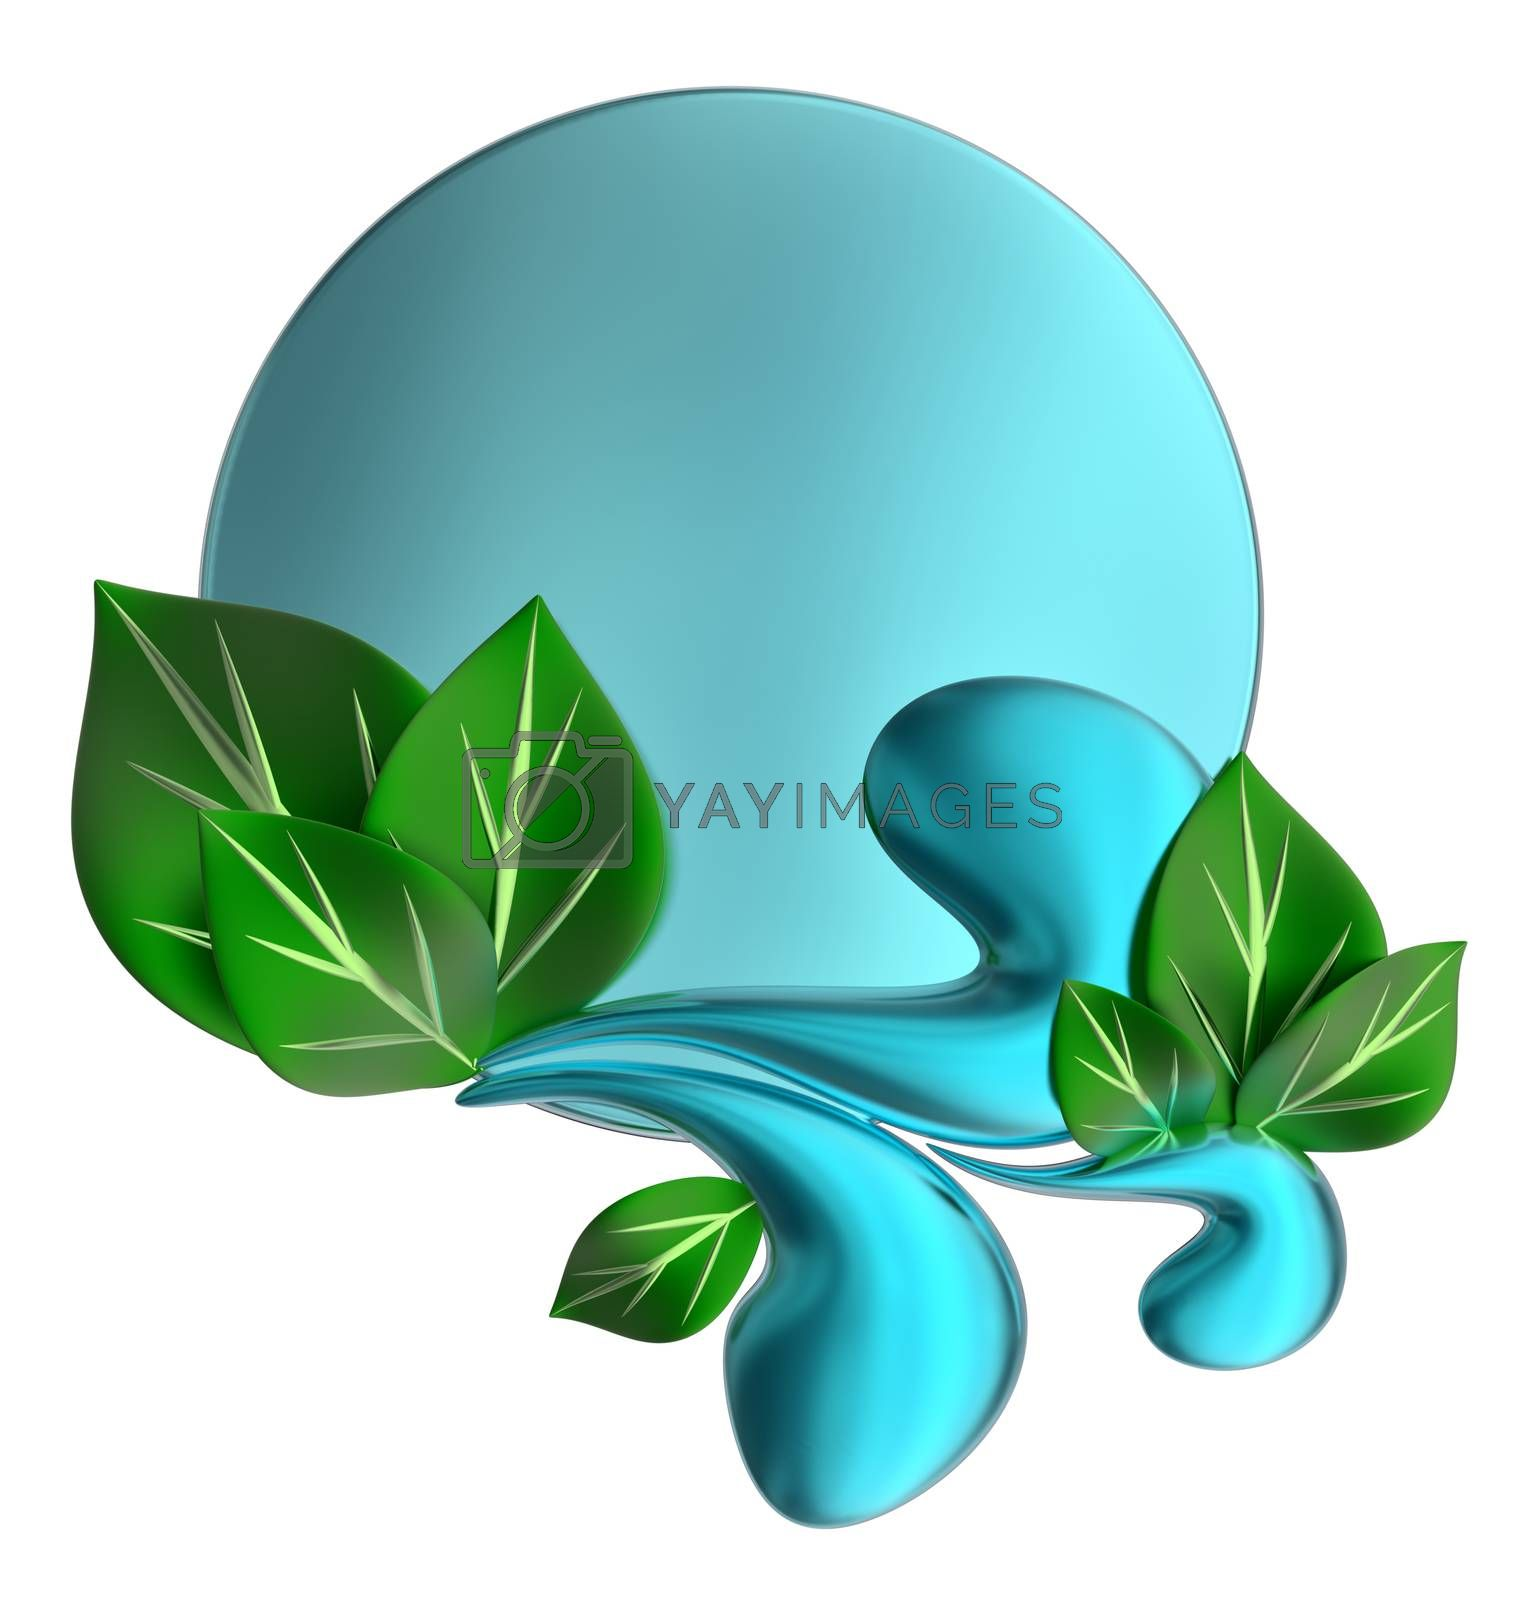 Green and blue form with water drops and leafs